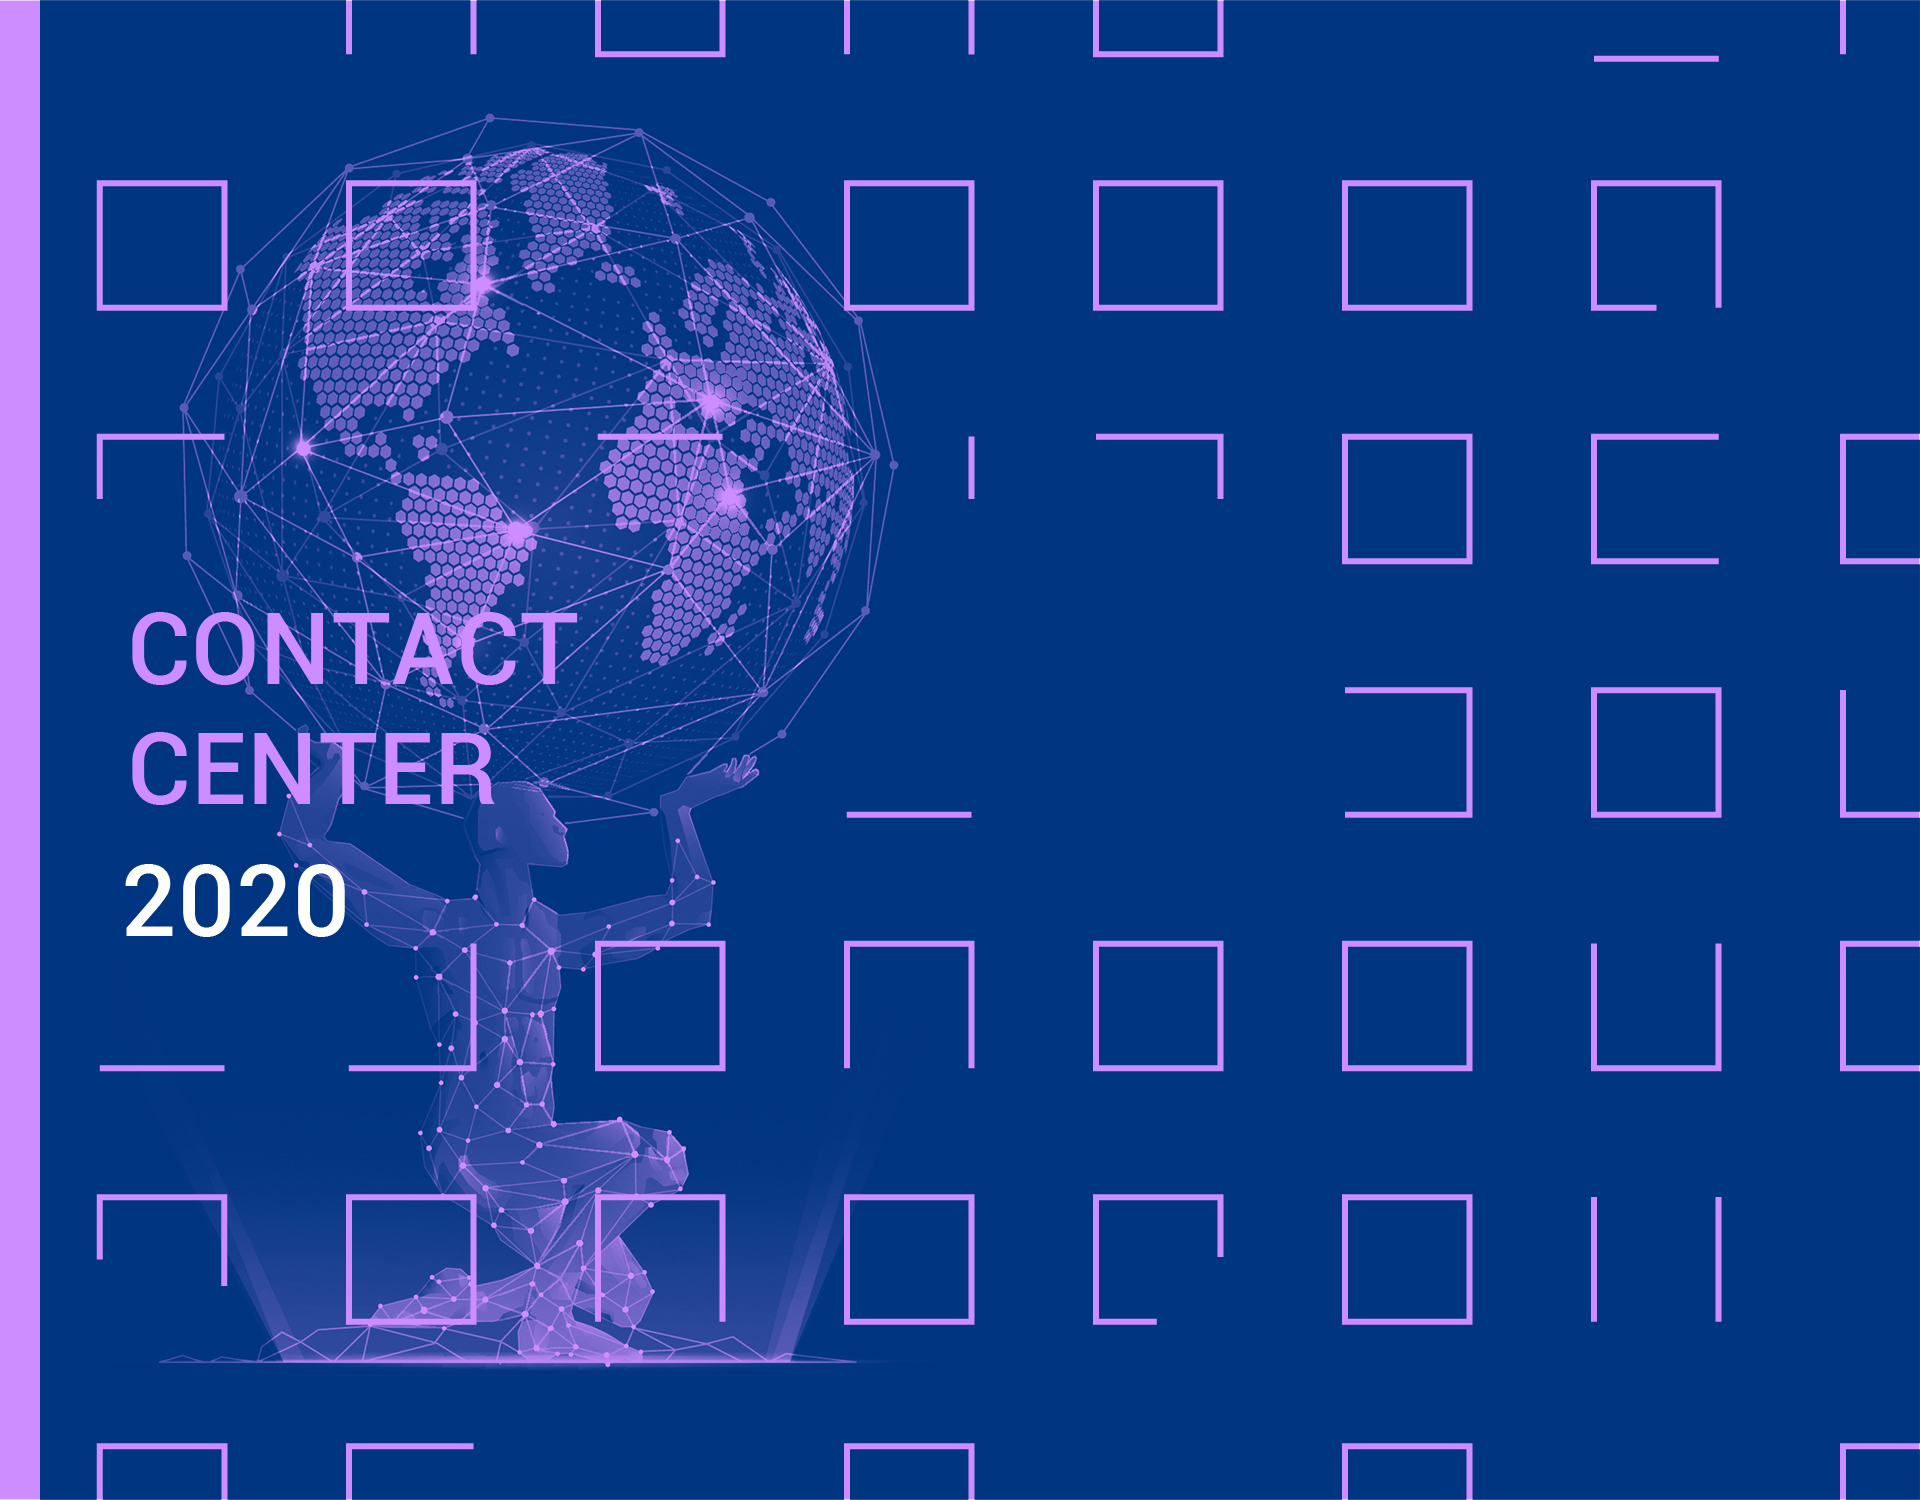 Rapporto Contact Center Bancari 2020 - Le spalle larghe del Contact Center